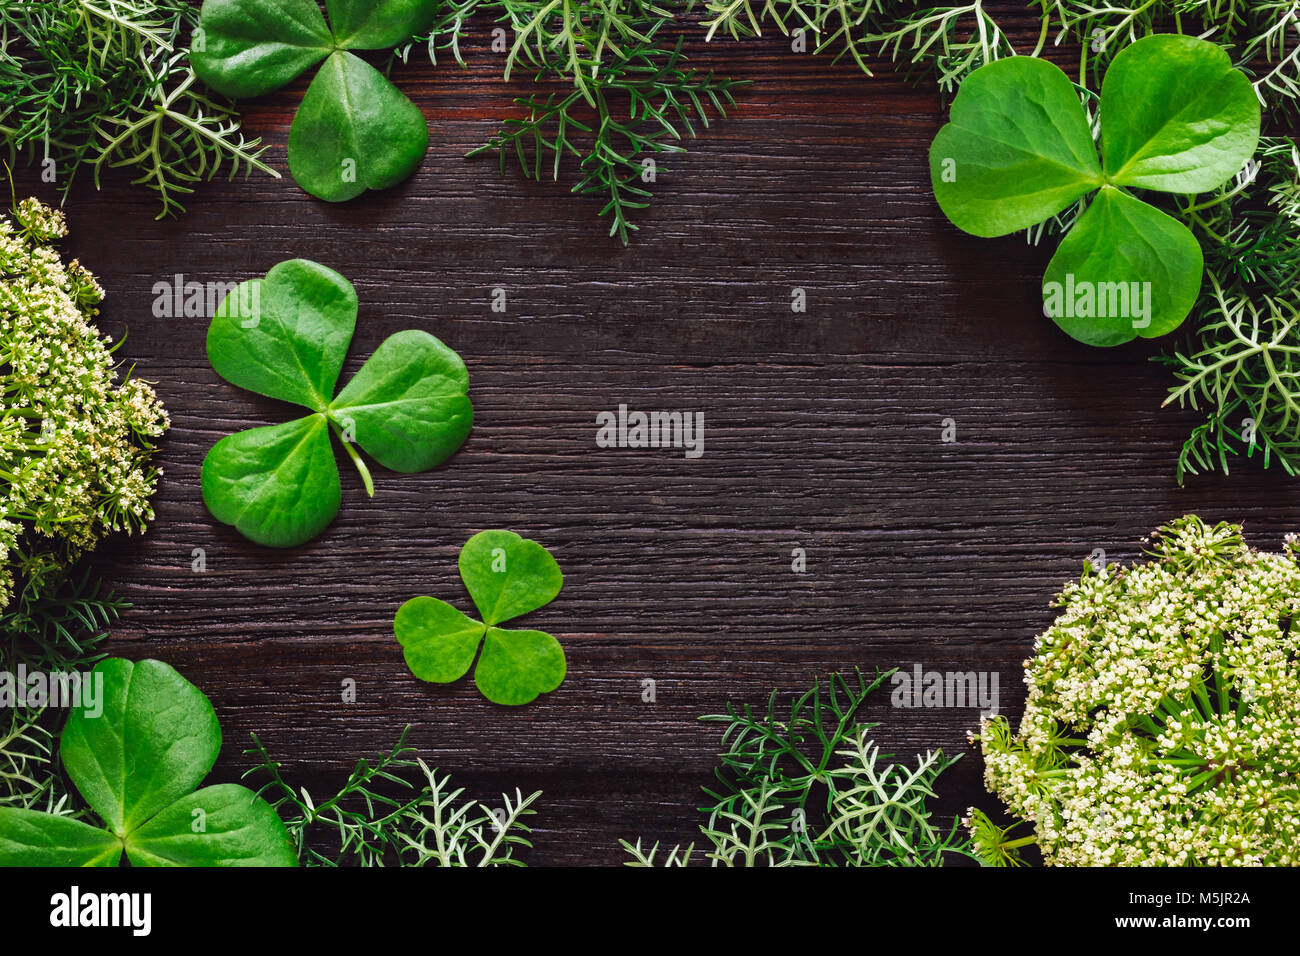 Shamrocks with Mixed Foliage on Dark Table with Space for Copy - Stock Image